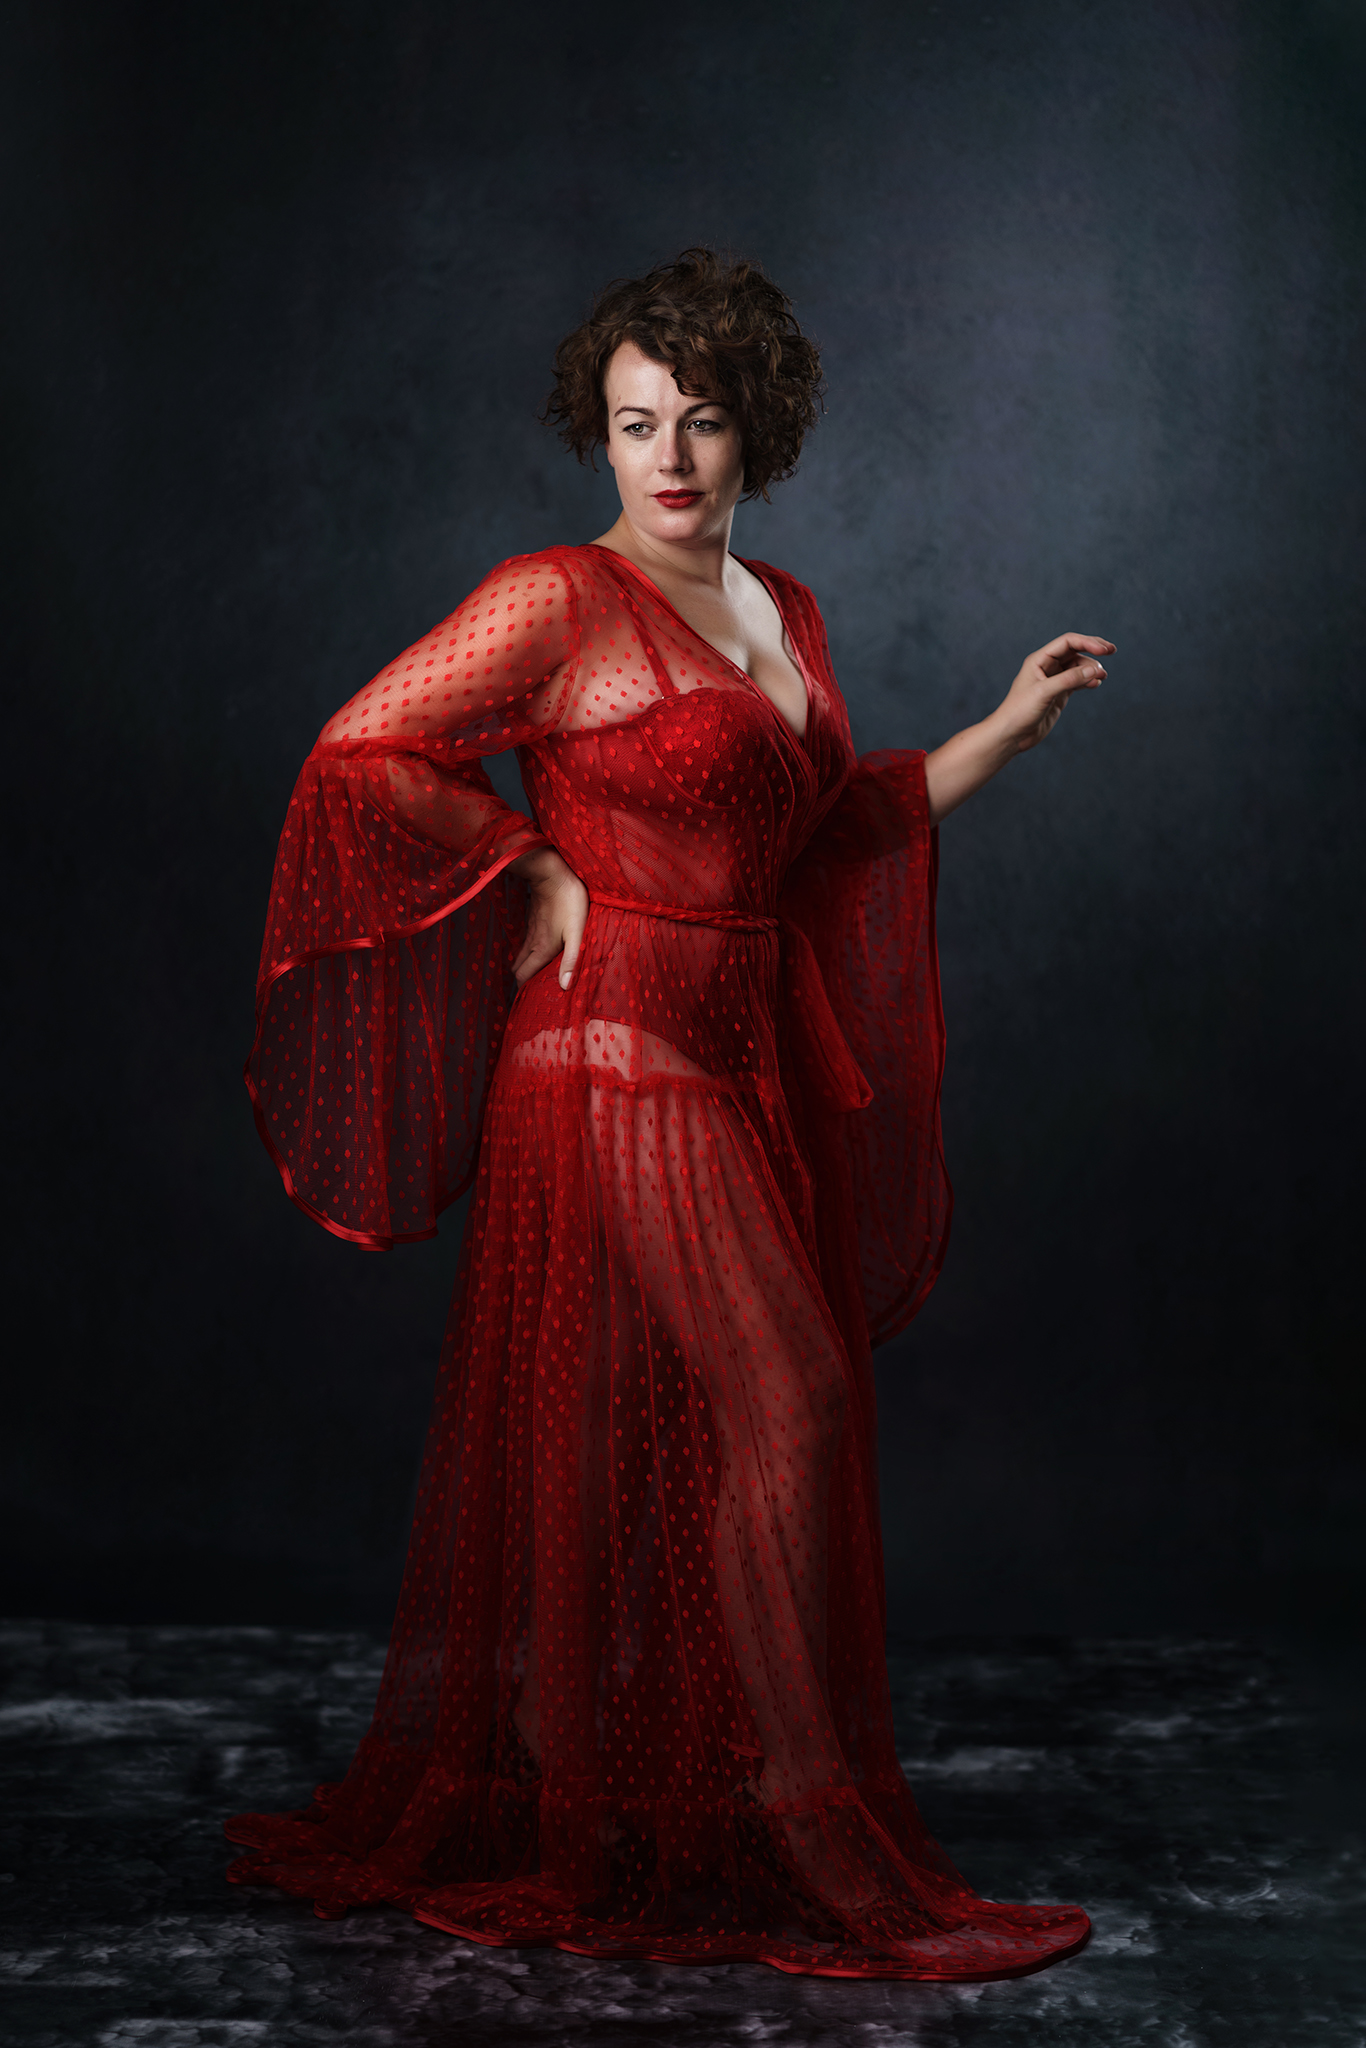 model in red lace dress by Boudoir Photographer Lancashire